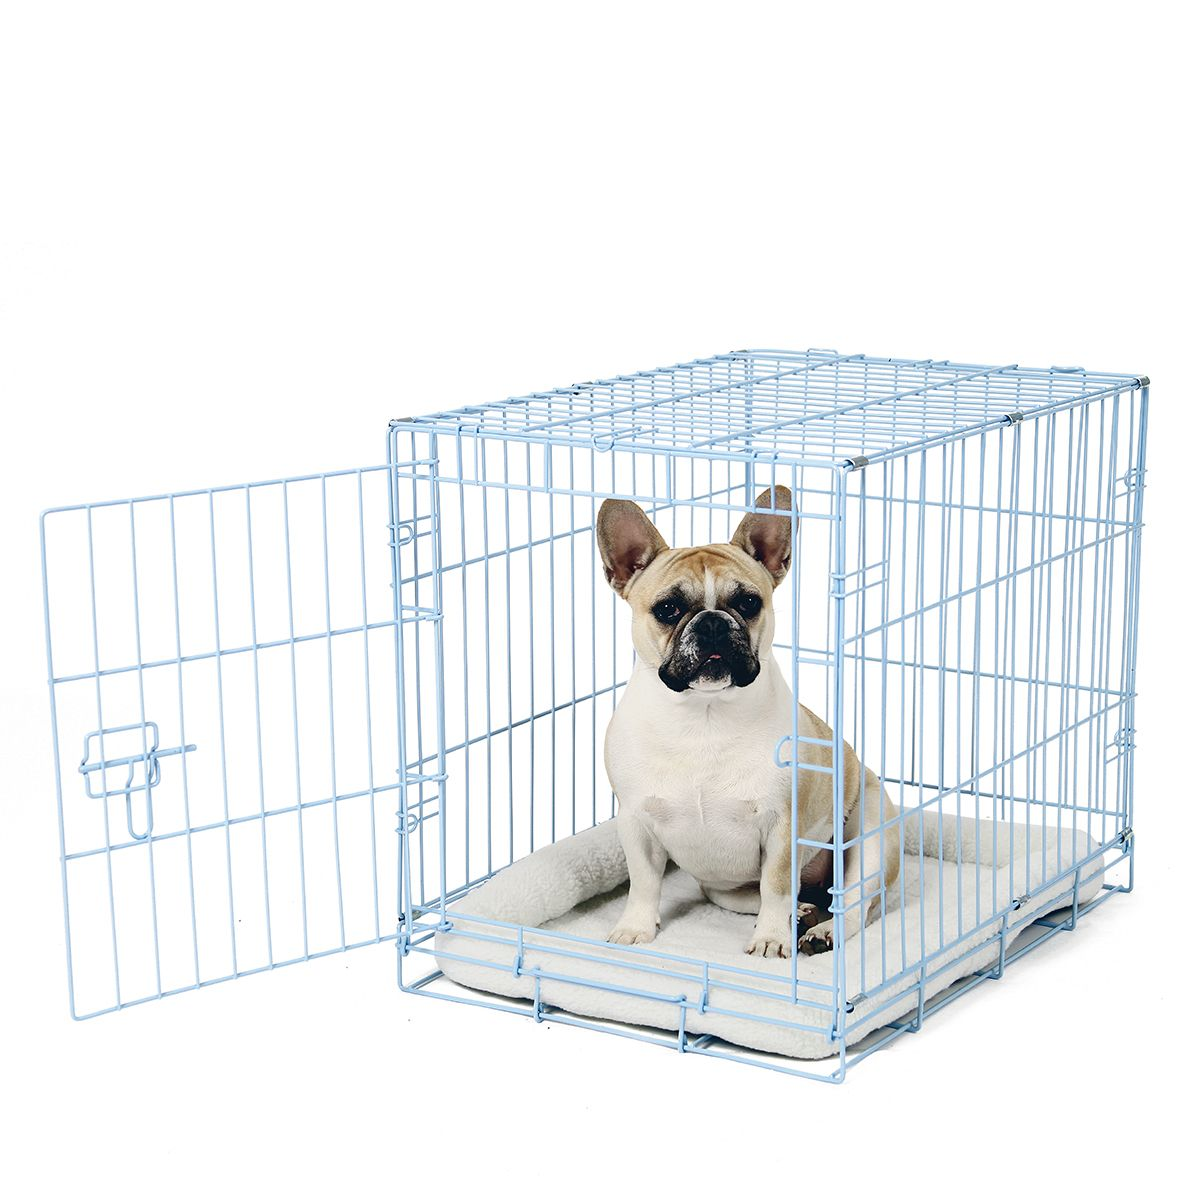 Small Blue Dog Crate Small Dog Crate Dog Crate Dog Cages